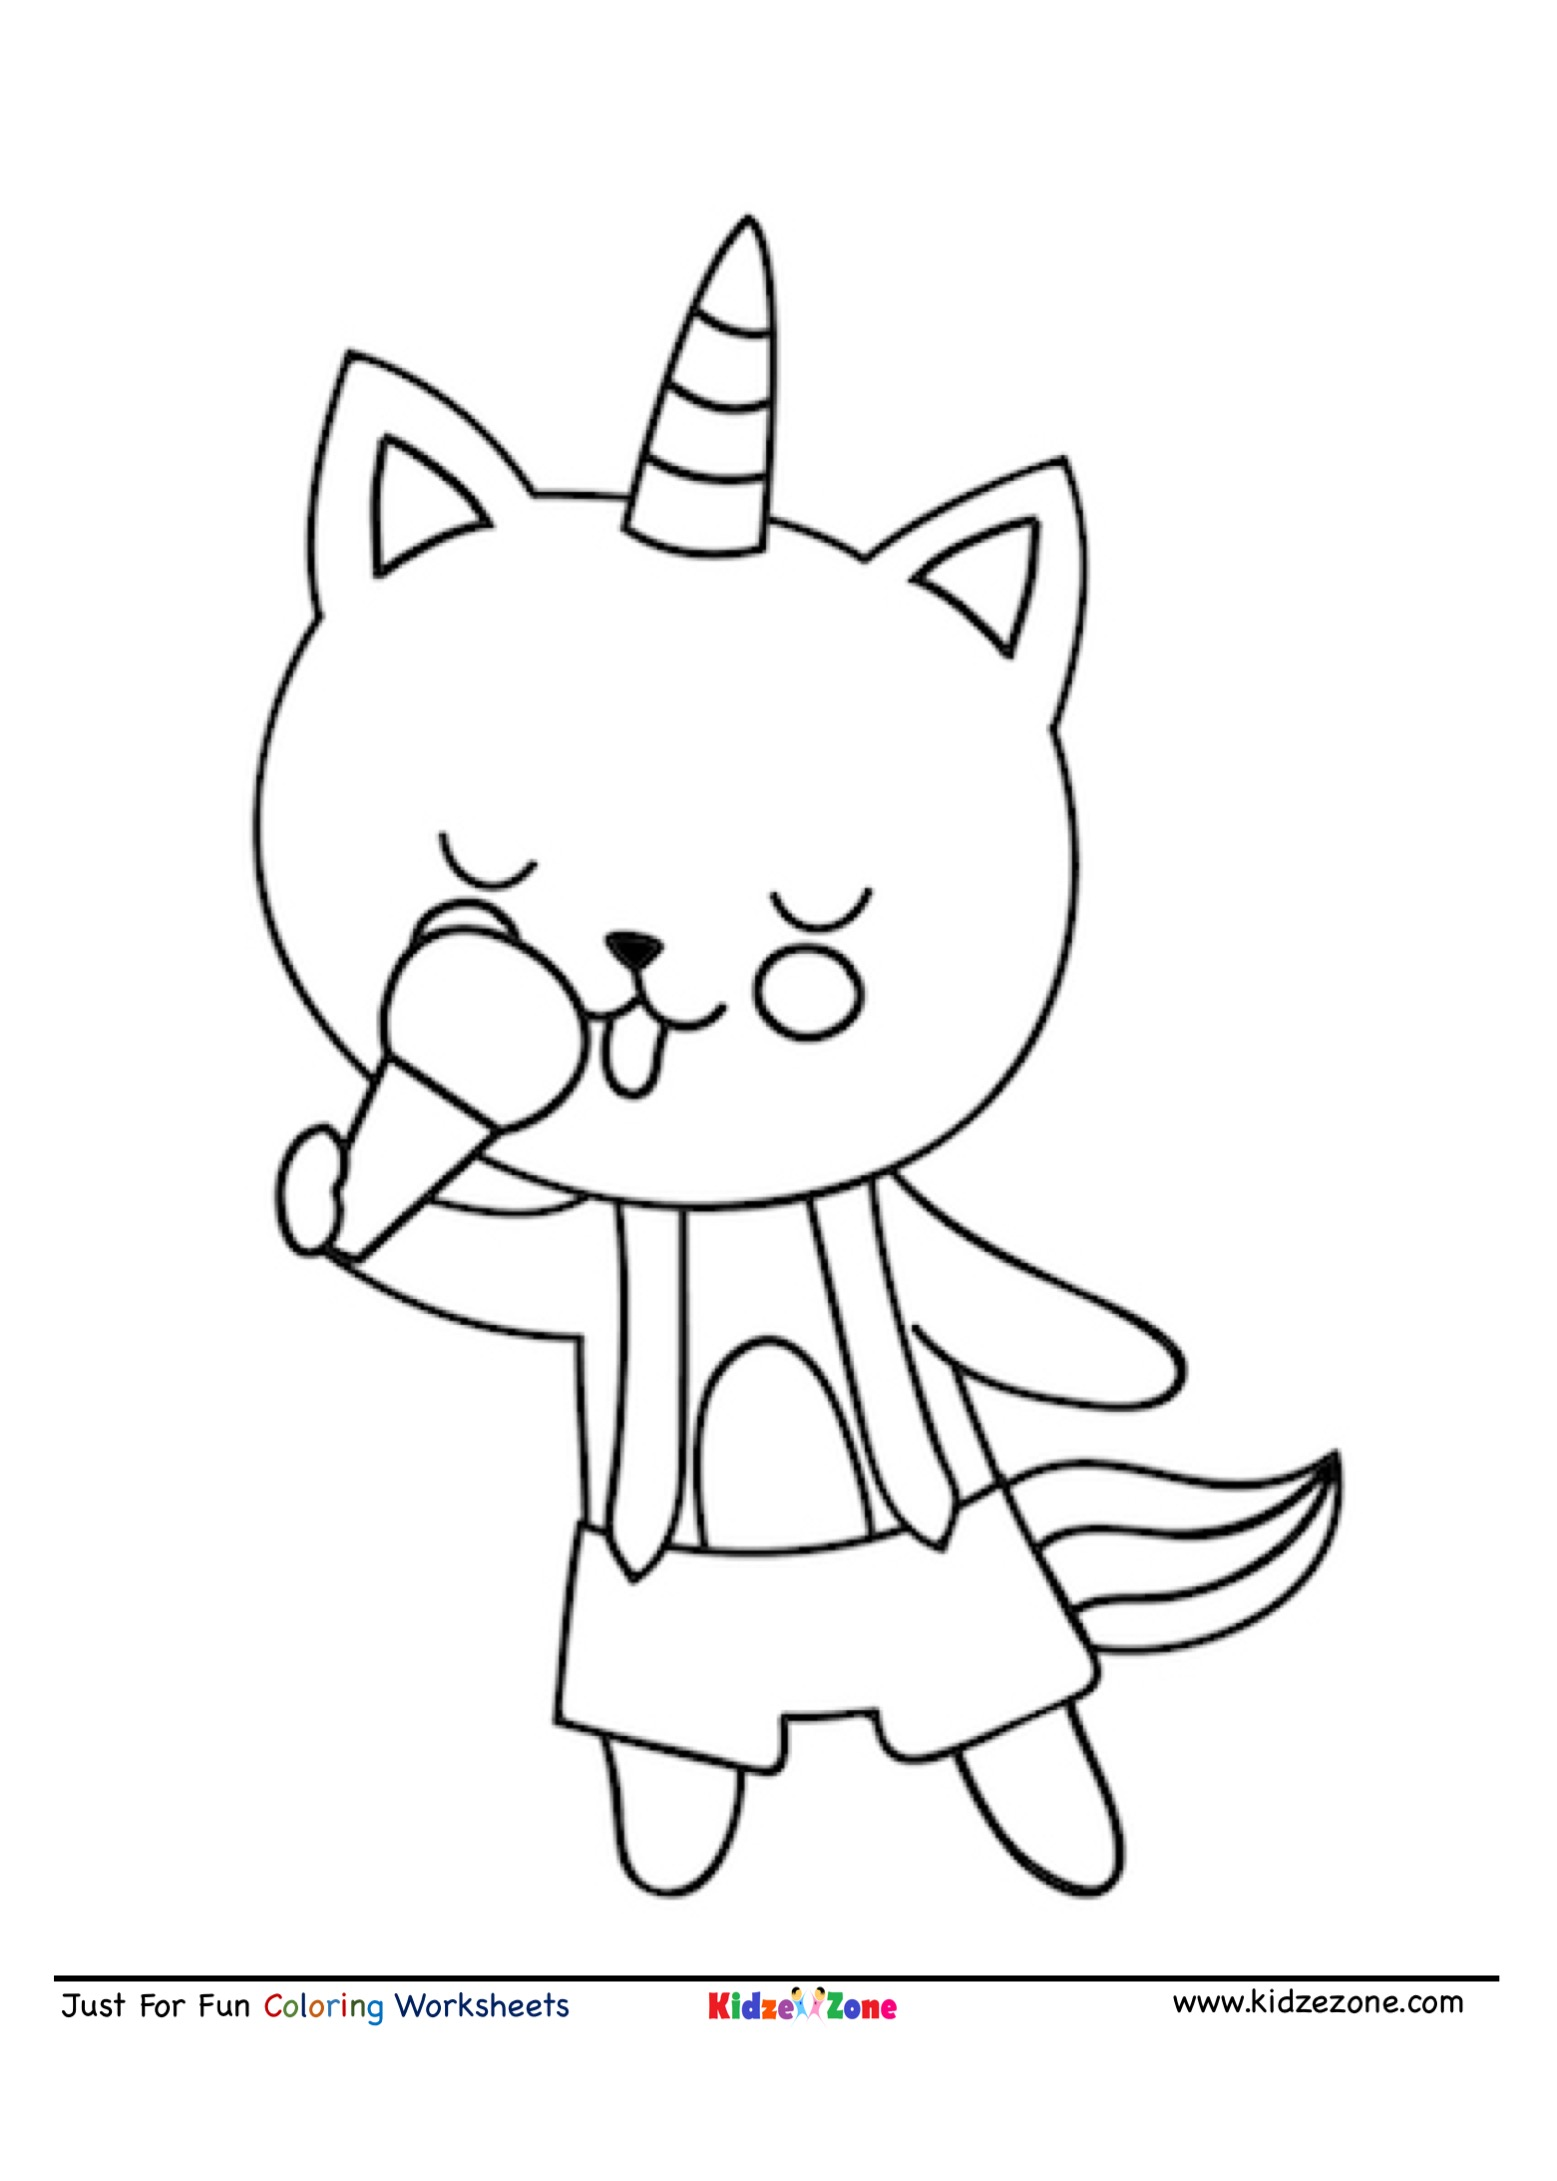 Cat Eating Ice Cream Cartoon Coloring Page